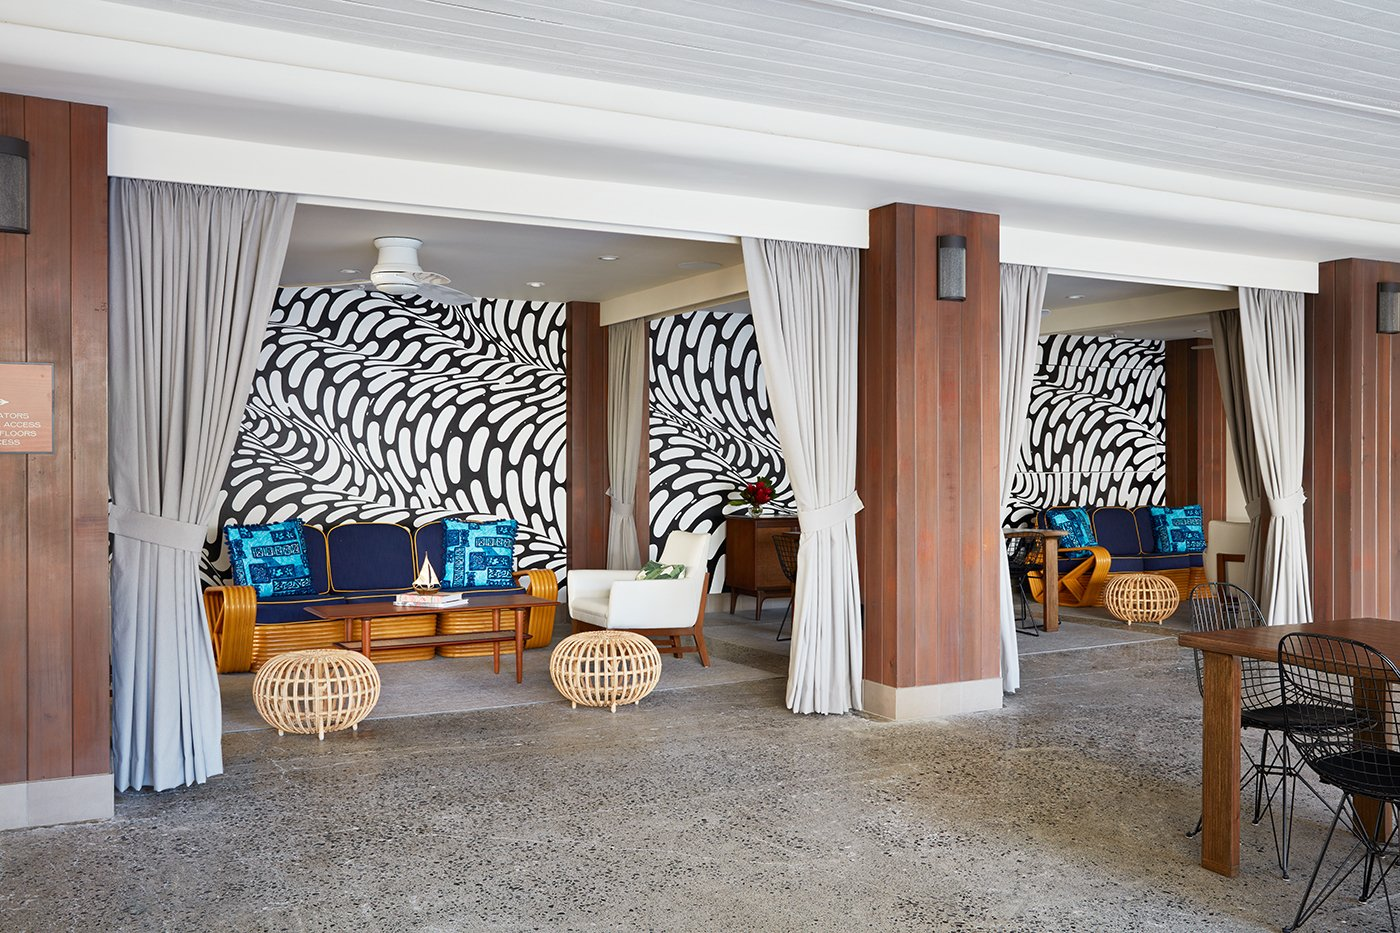 this surf inspired hotel celebrates waikikis creative spirit and its midcentury roots